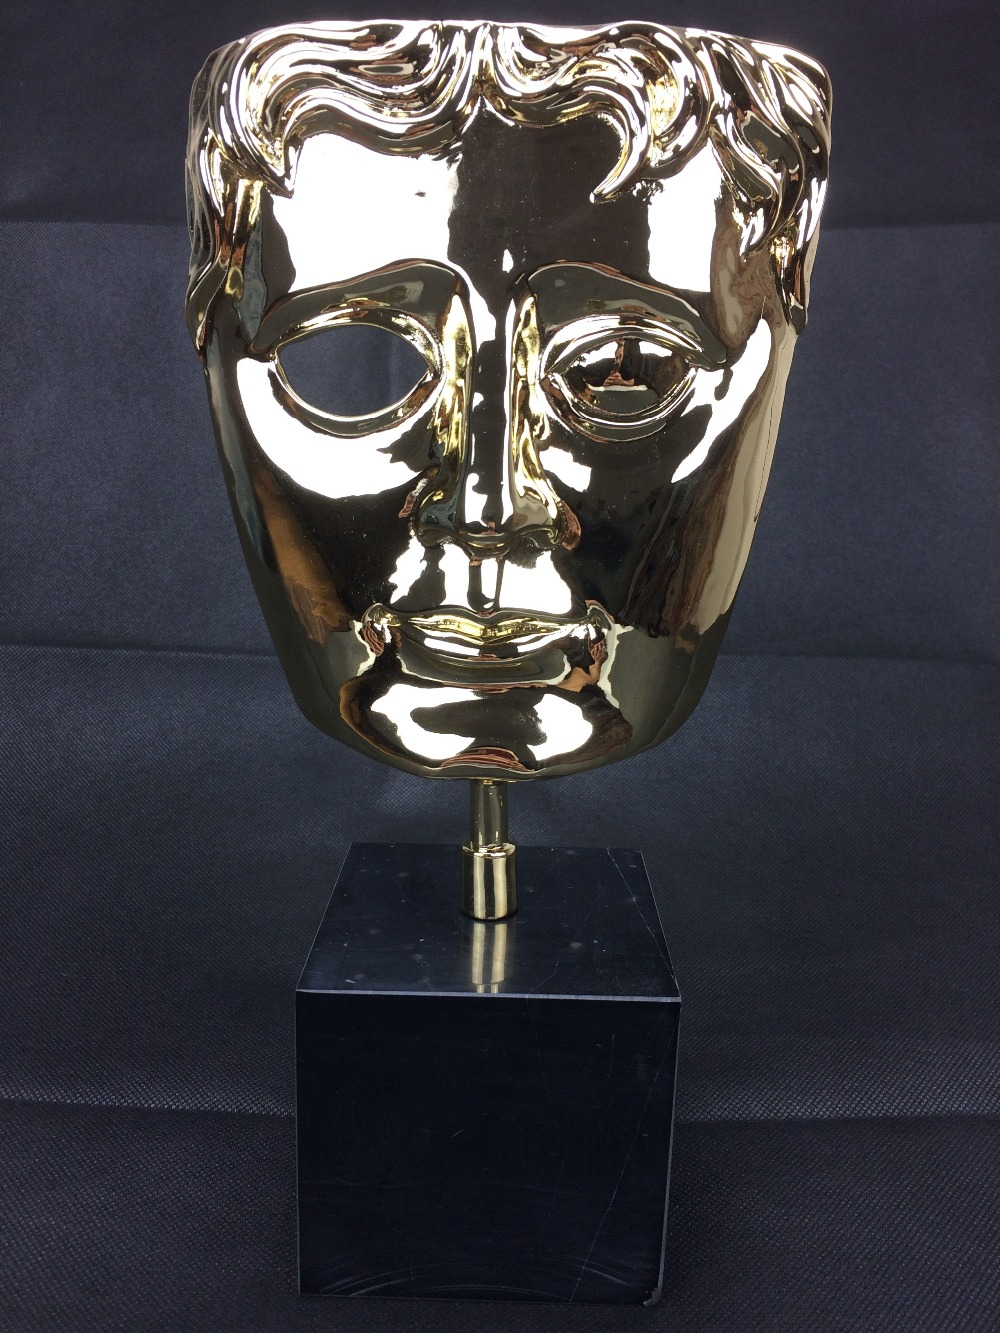 BAFTA Awards, Metal replika BAFTA Awards, Britsish Academy Film Awards